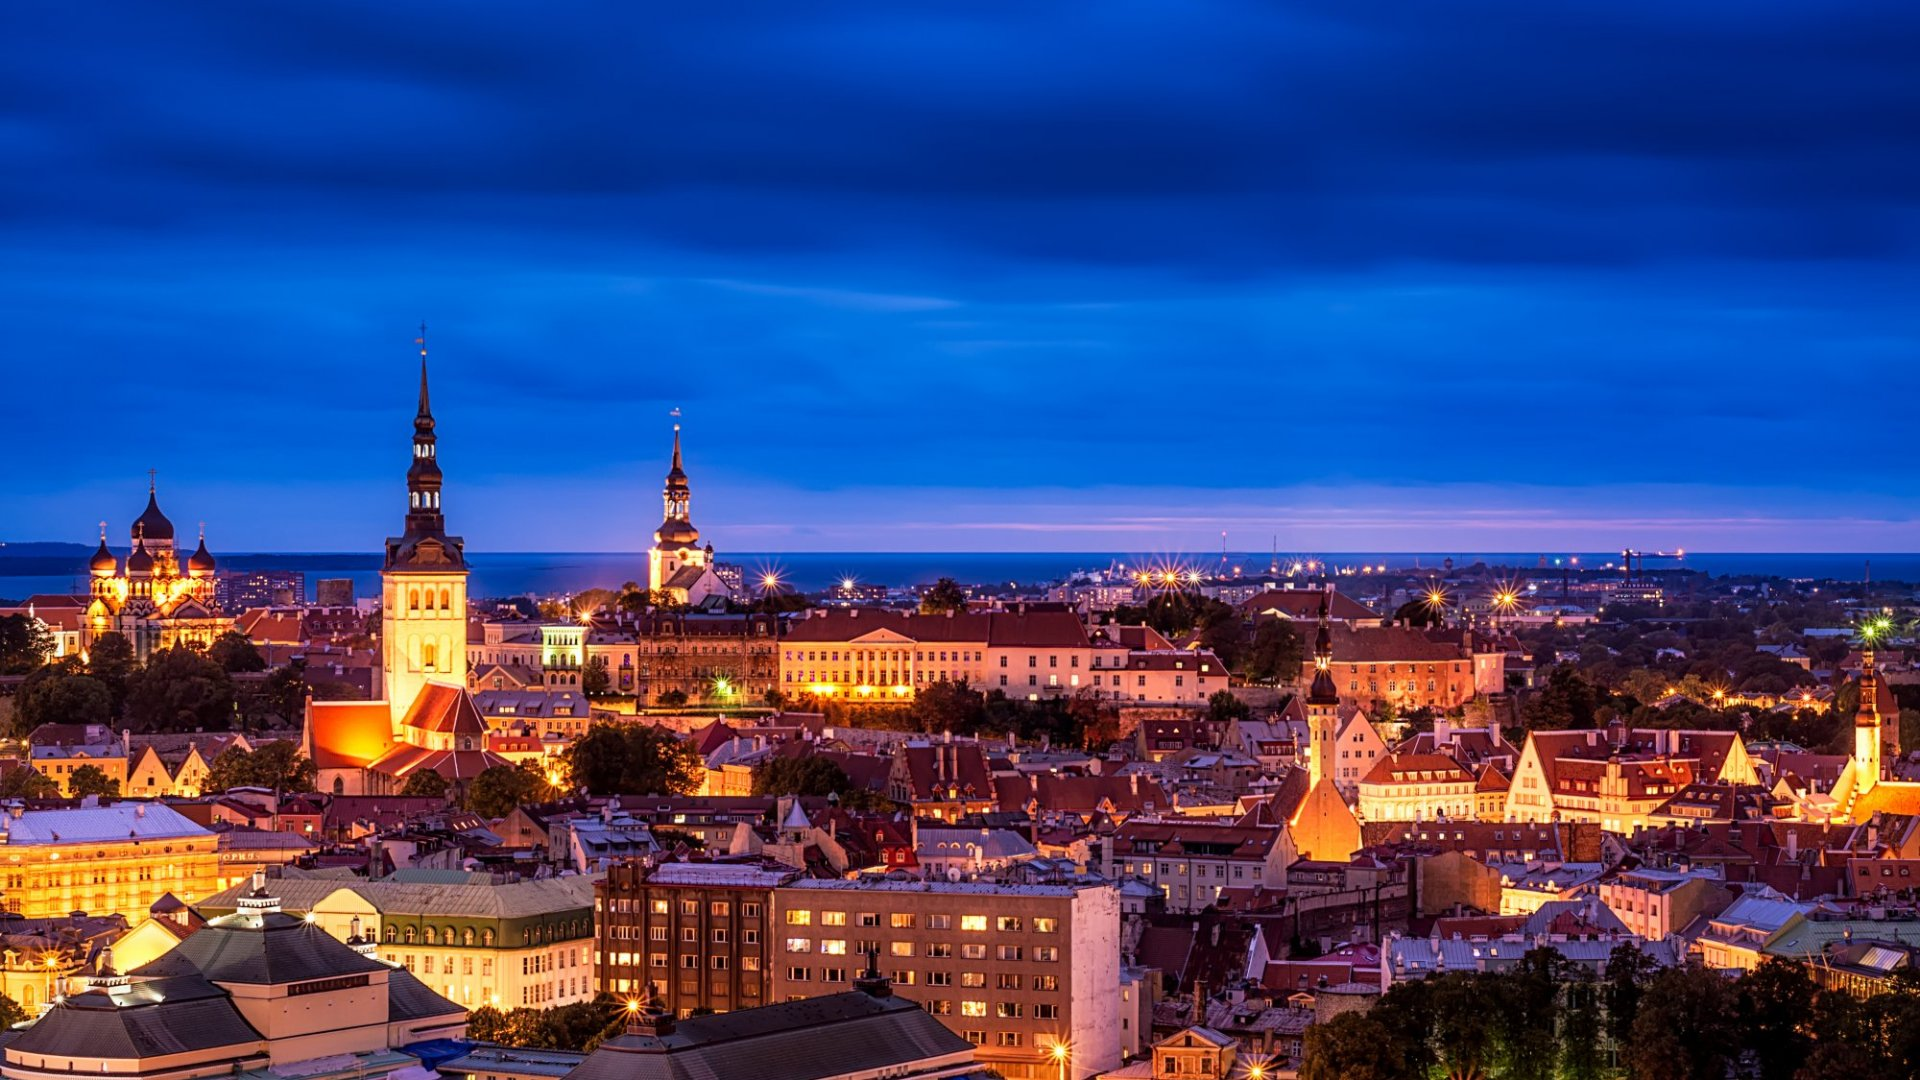 5 Things to Know About Doing Business in Tallinn